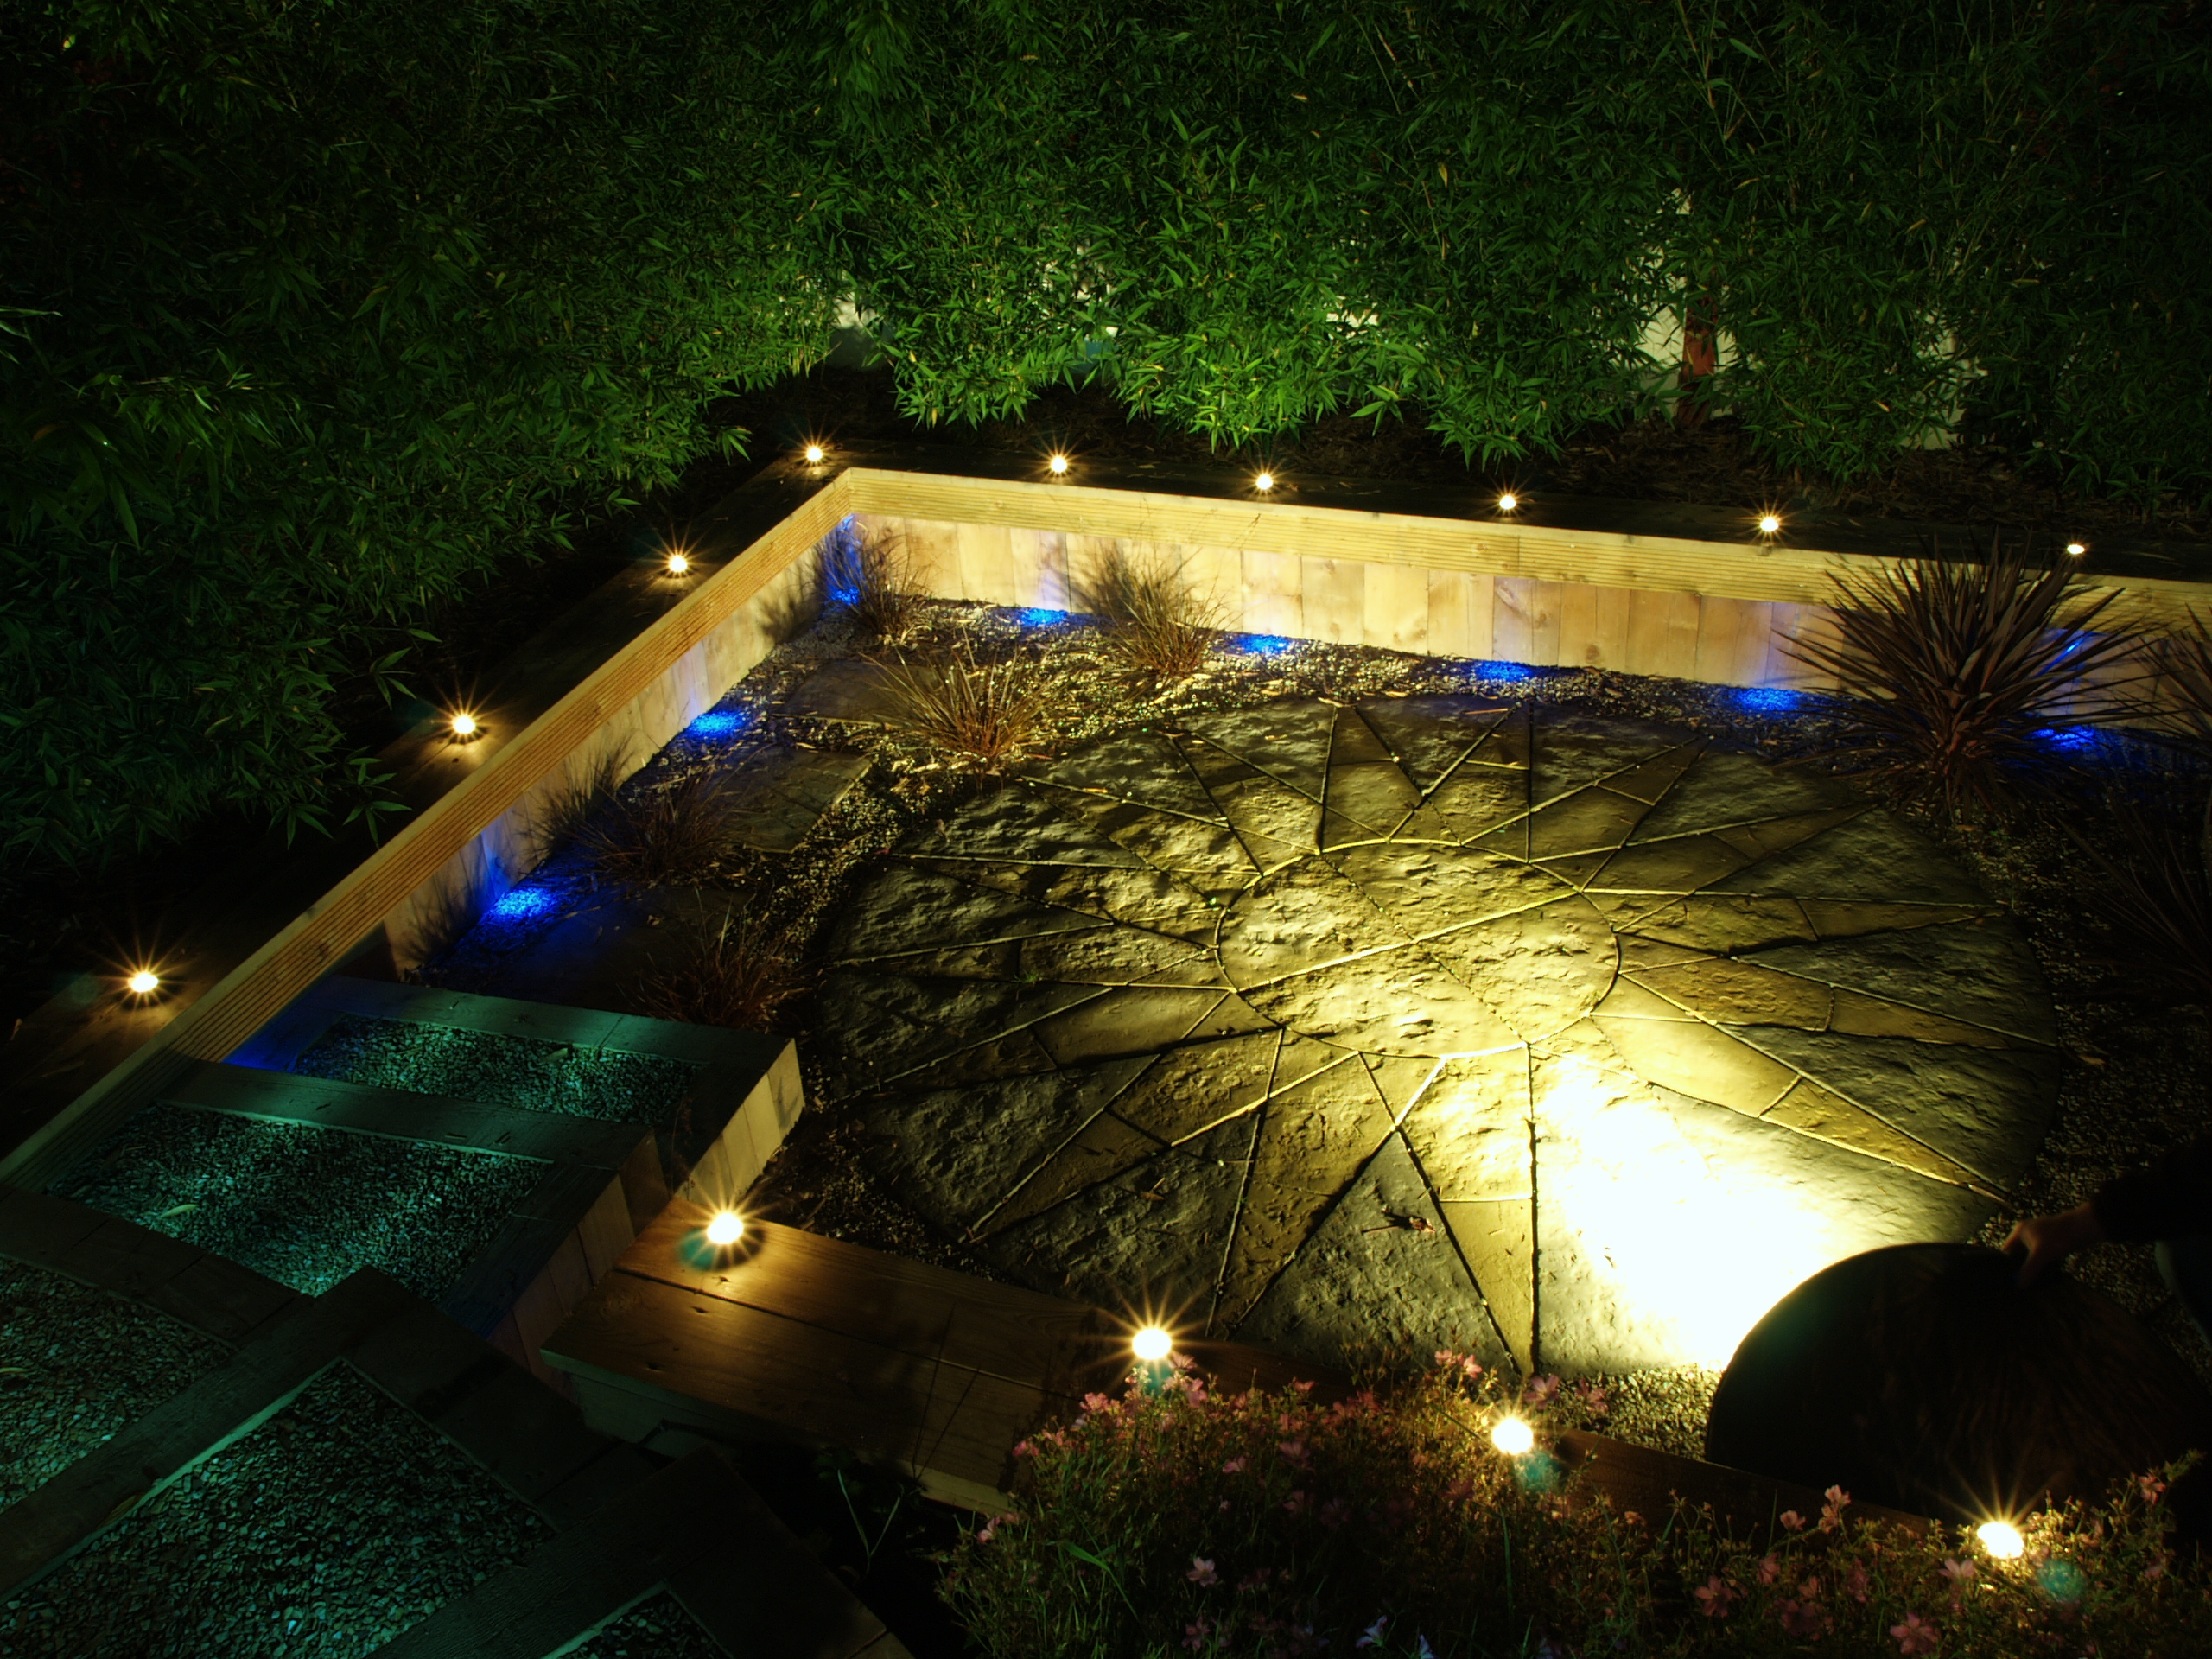 Oudoor garden lighting design shankill dublin ireland garden lighting design ireland audiocablefo Light database